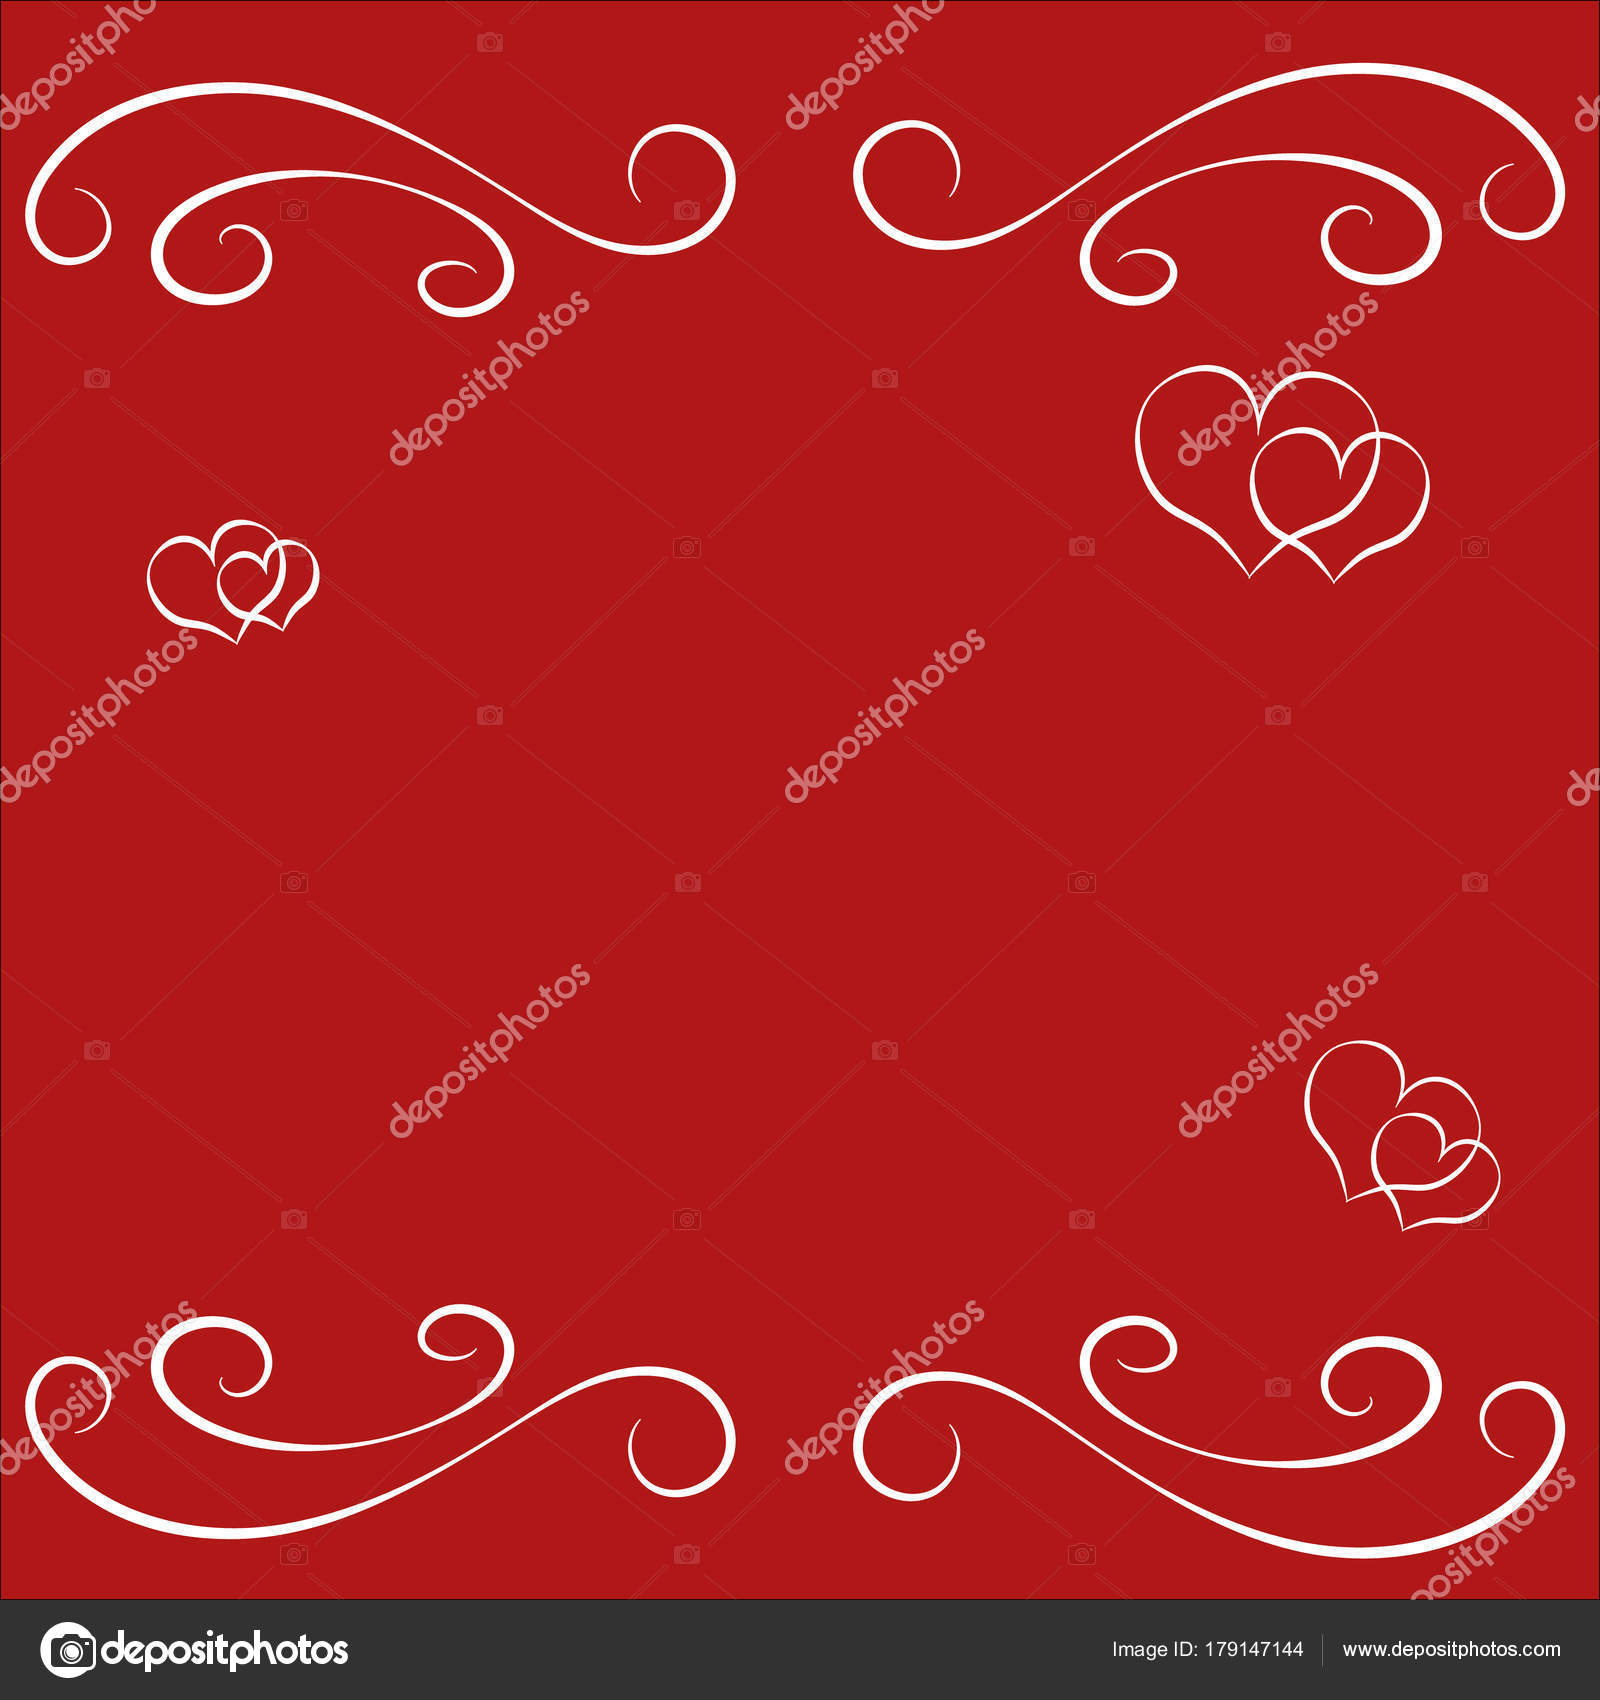 Abstract happy valentine day empty border frame for greeting card abstract happy valentine day empty border frame for greeting card invitation letter and other celebration stopboris Choice Image